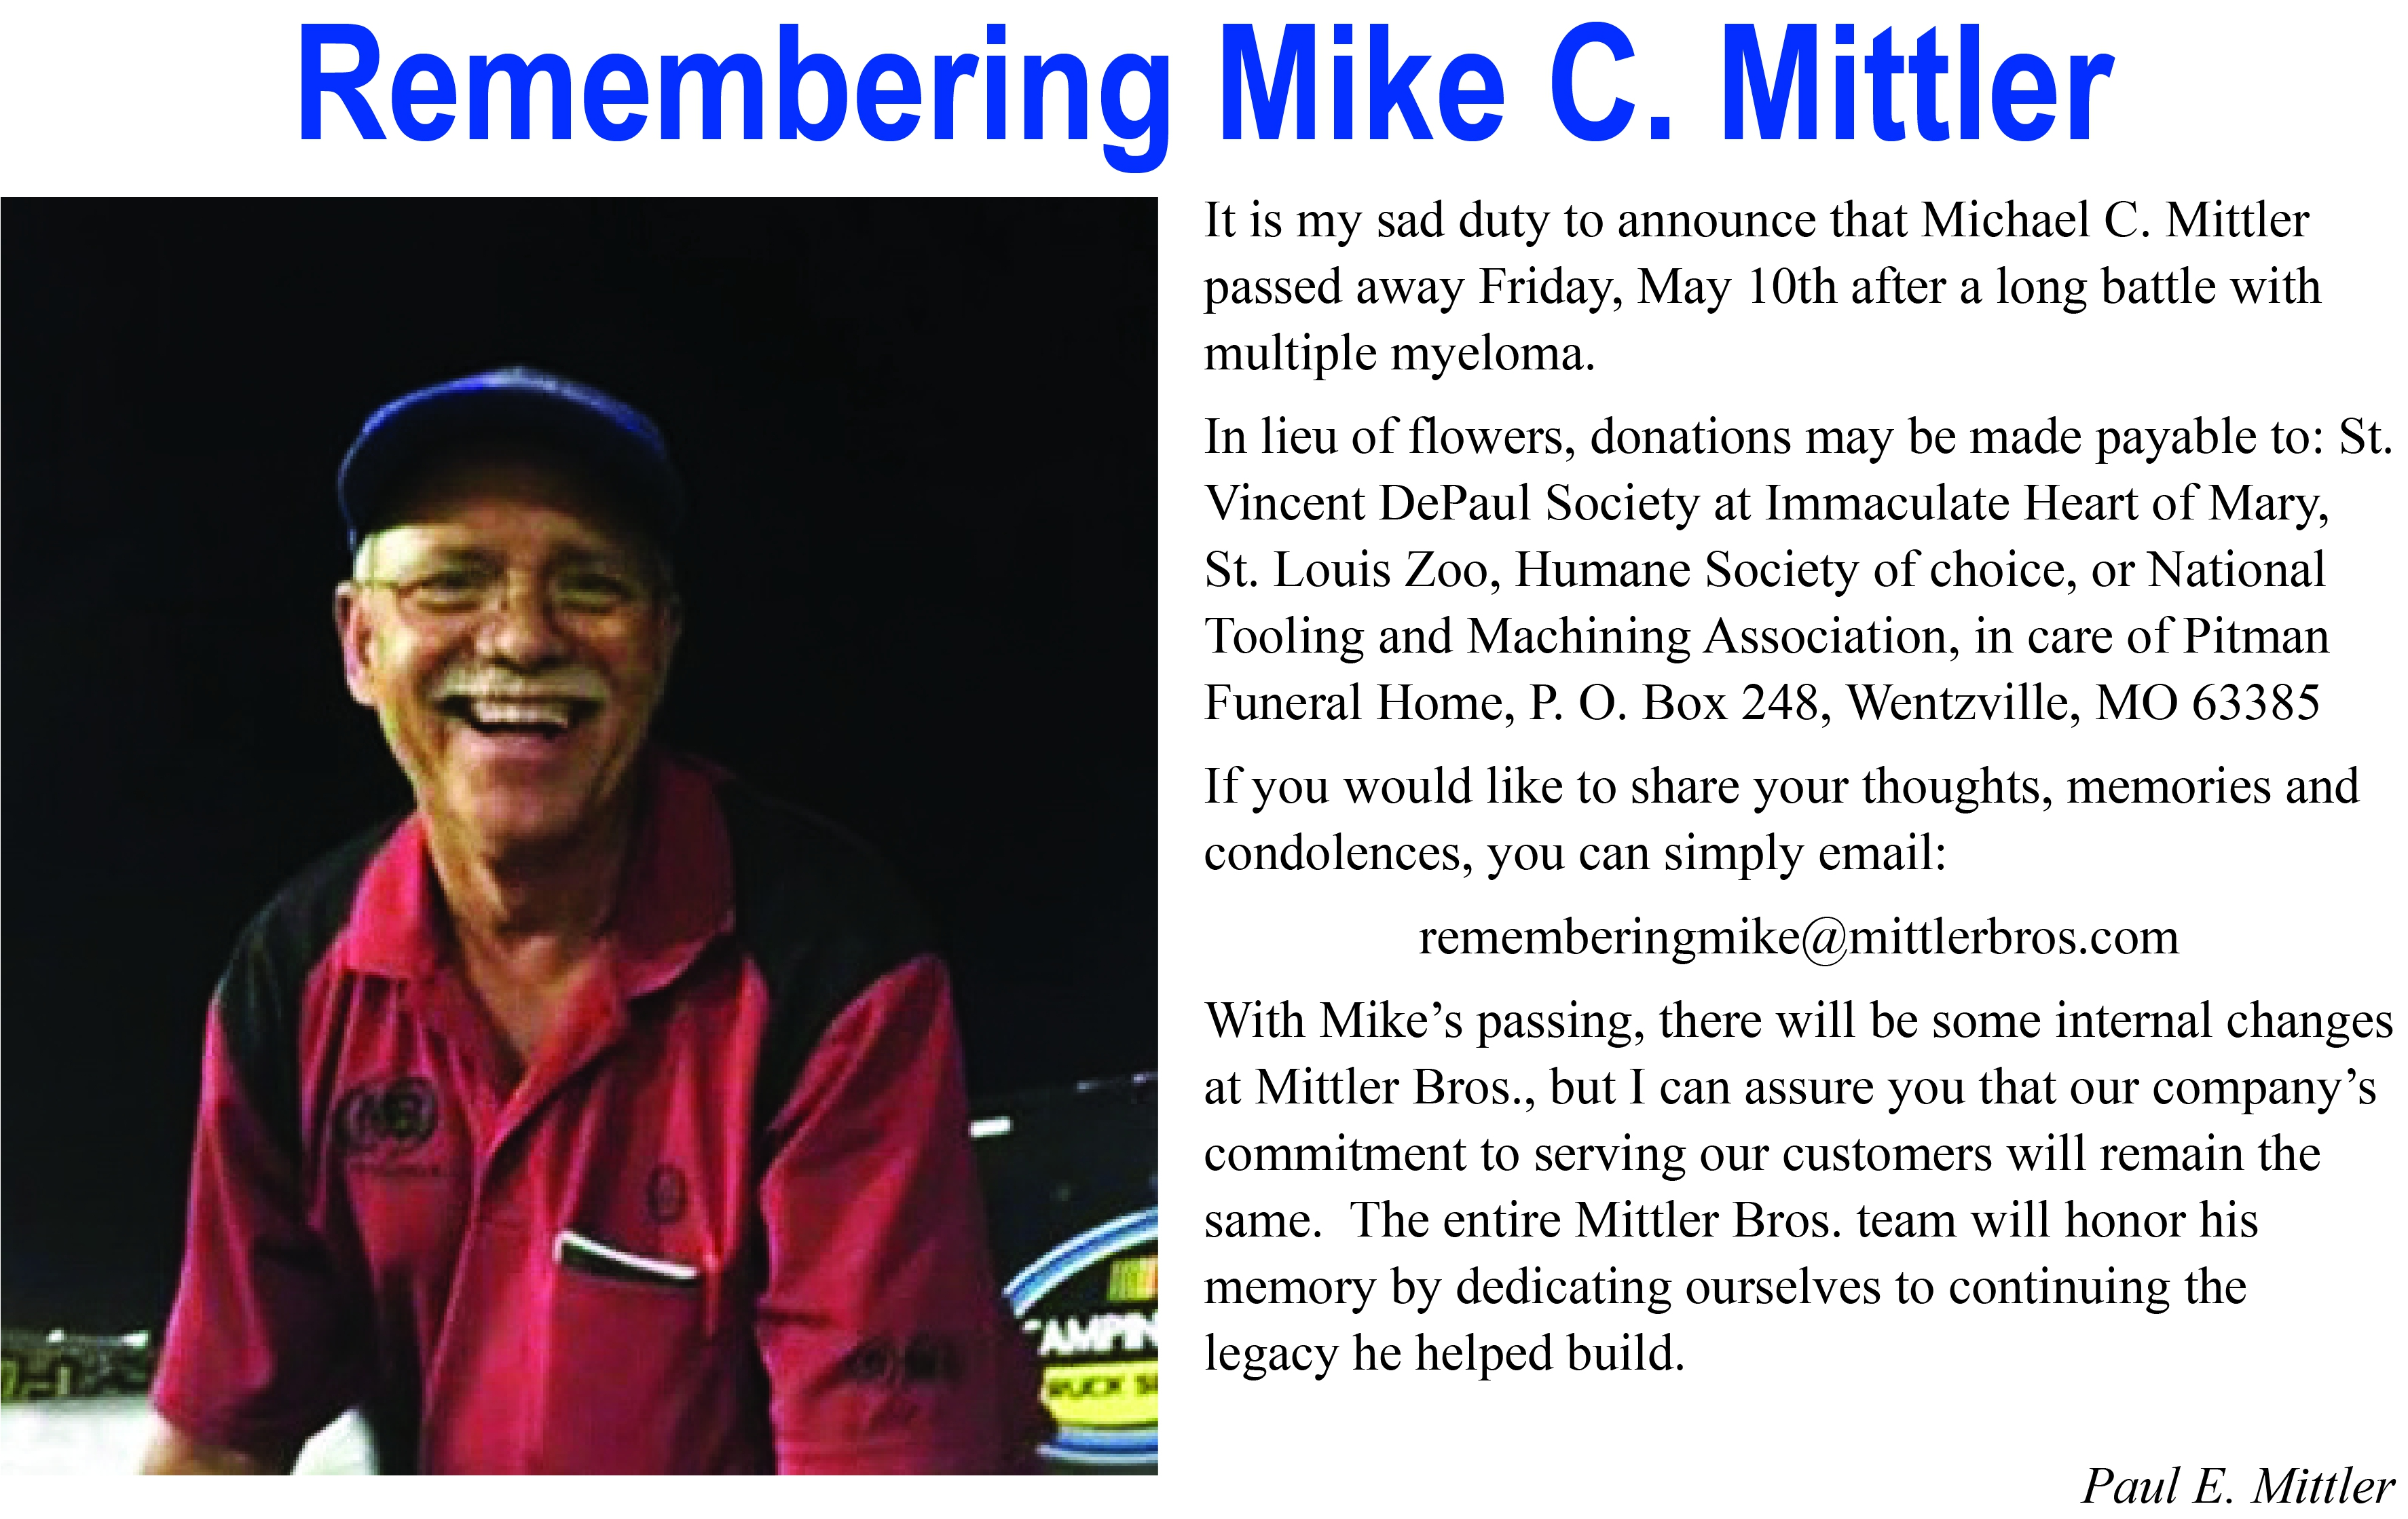 Remembering Mike C. Mittler